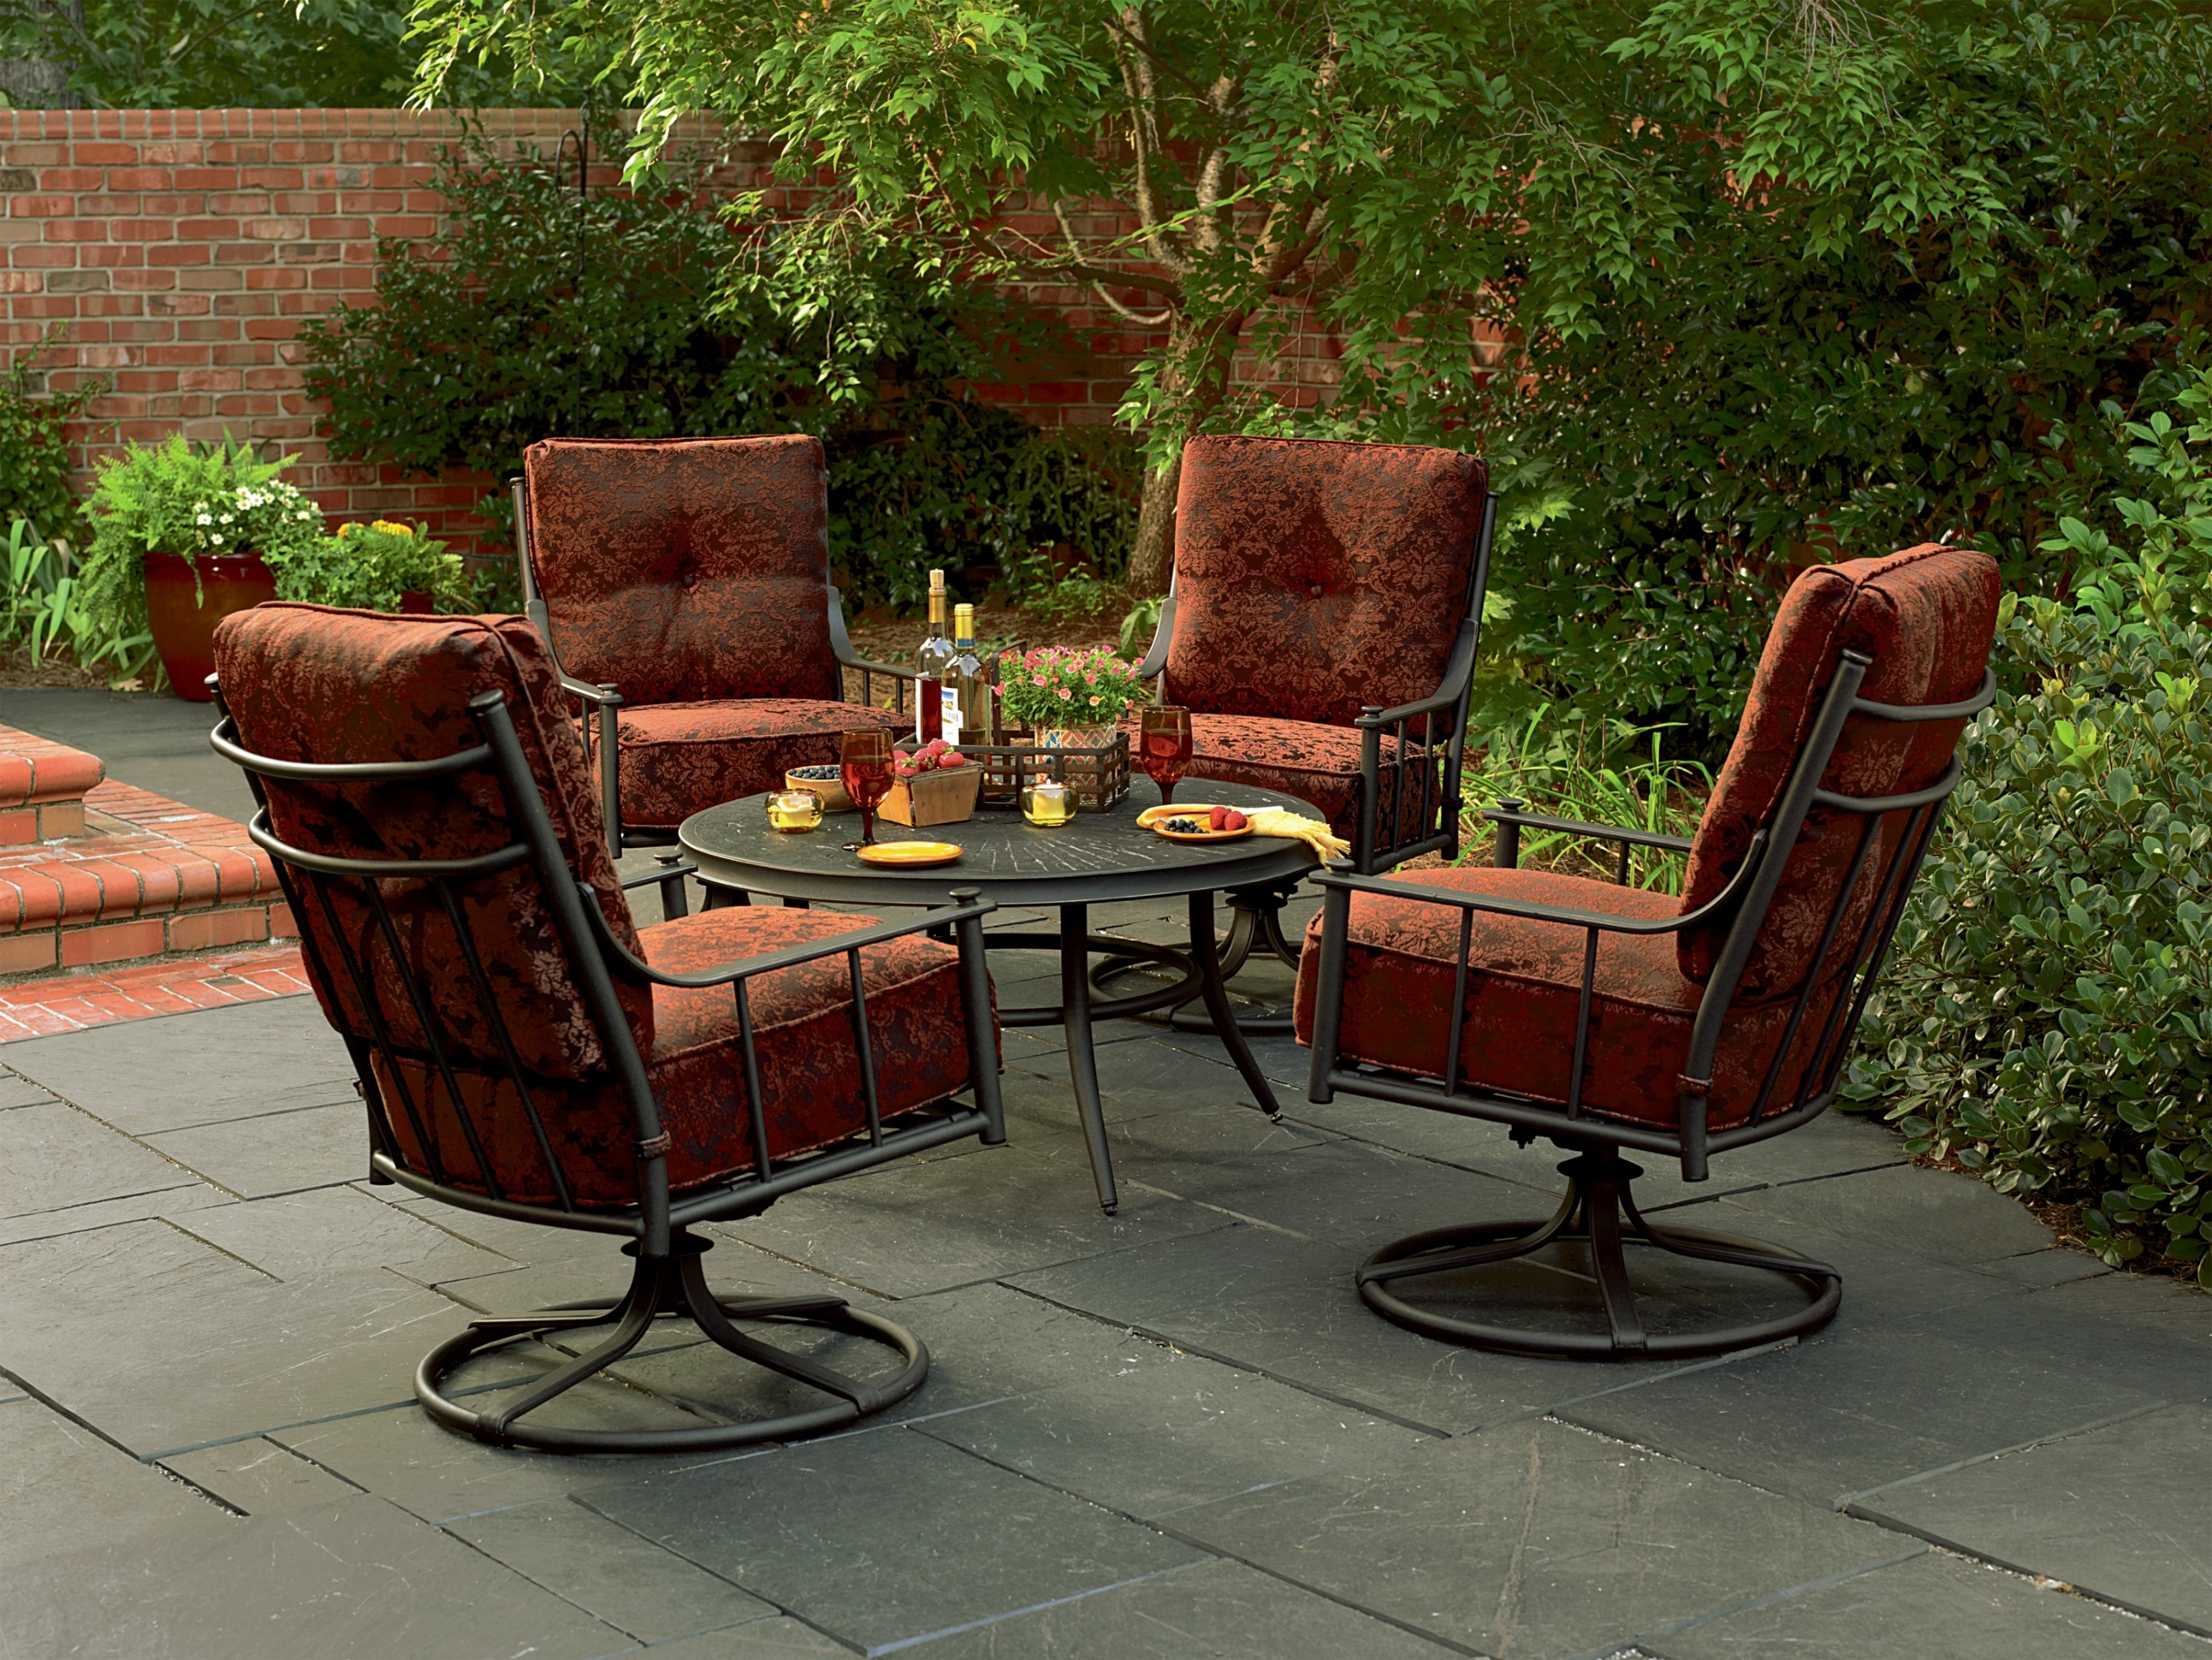 Newest Patio Conversation Sets With Swivel Chairs Intended For Impressive Steel Patio Furniture (View 15 of 20)